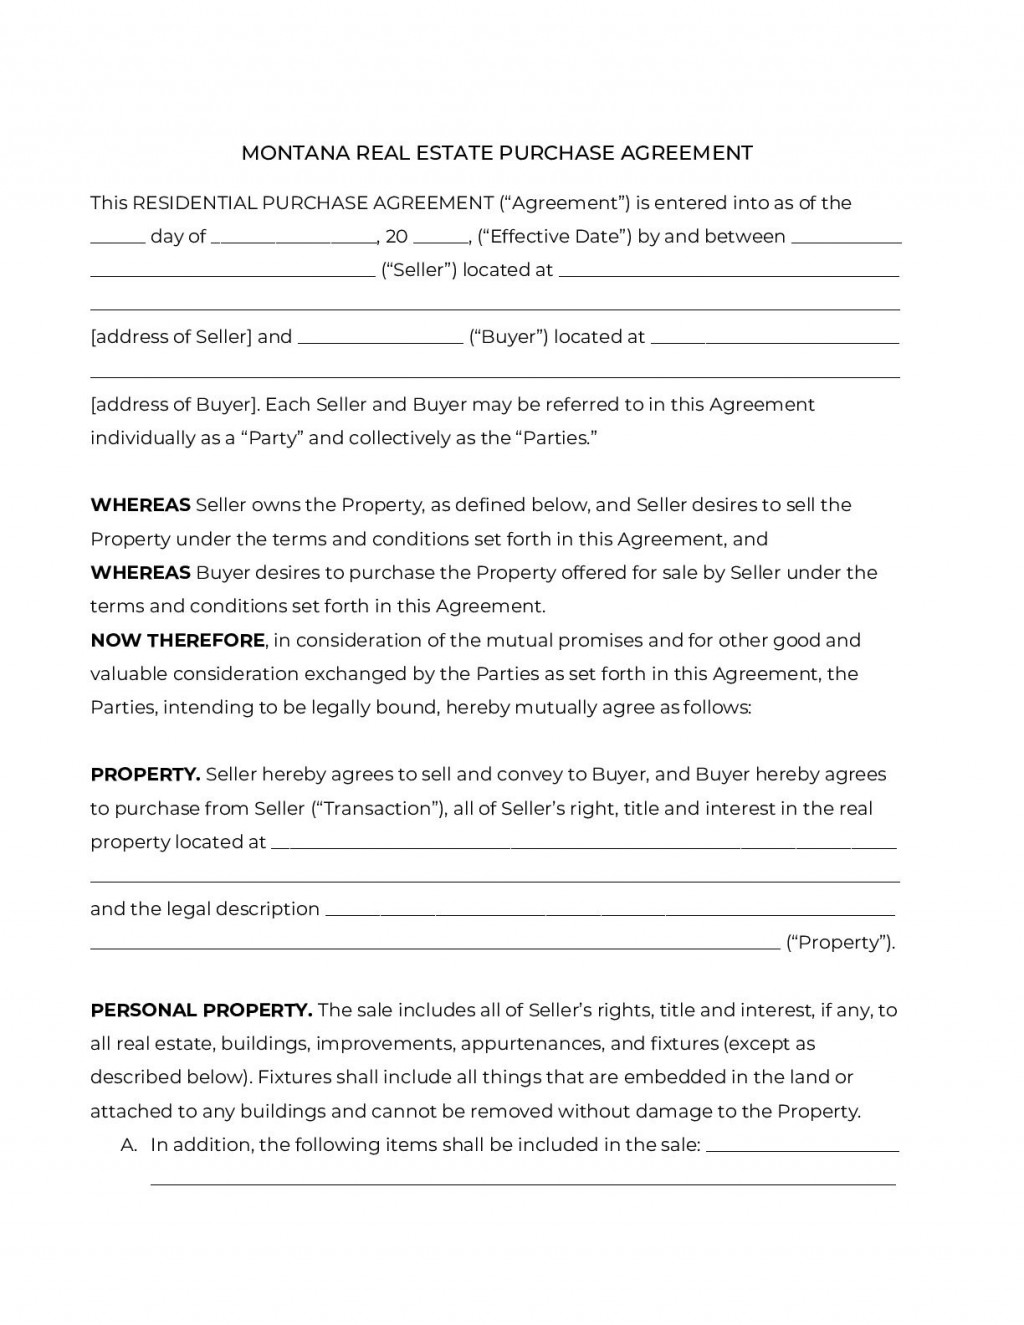 002 Phenomenal Real Estate Buy Sell Agreement Template Montana High Definition  Form FreeLarge